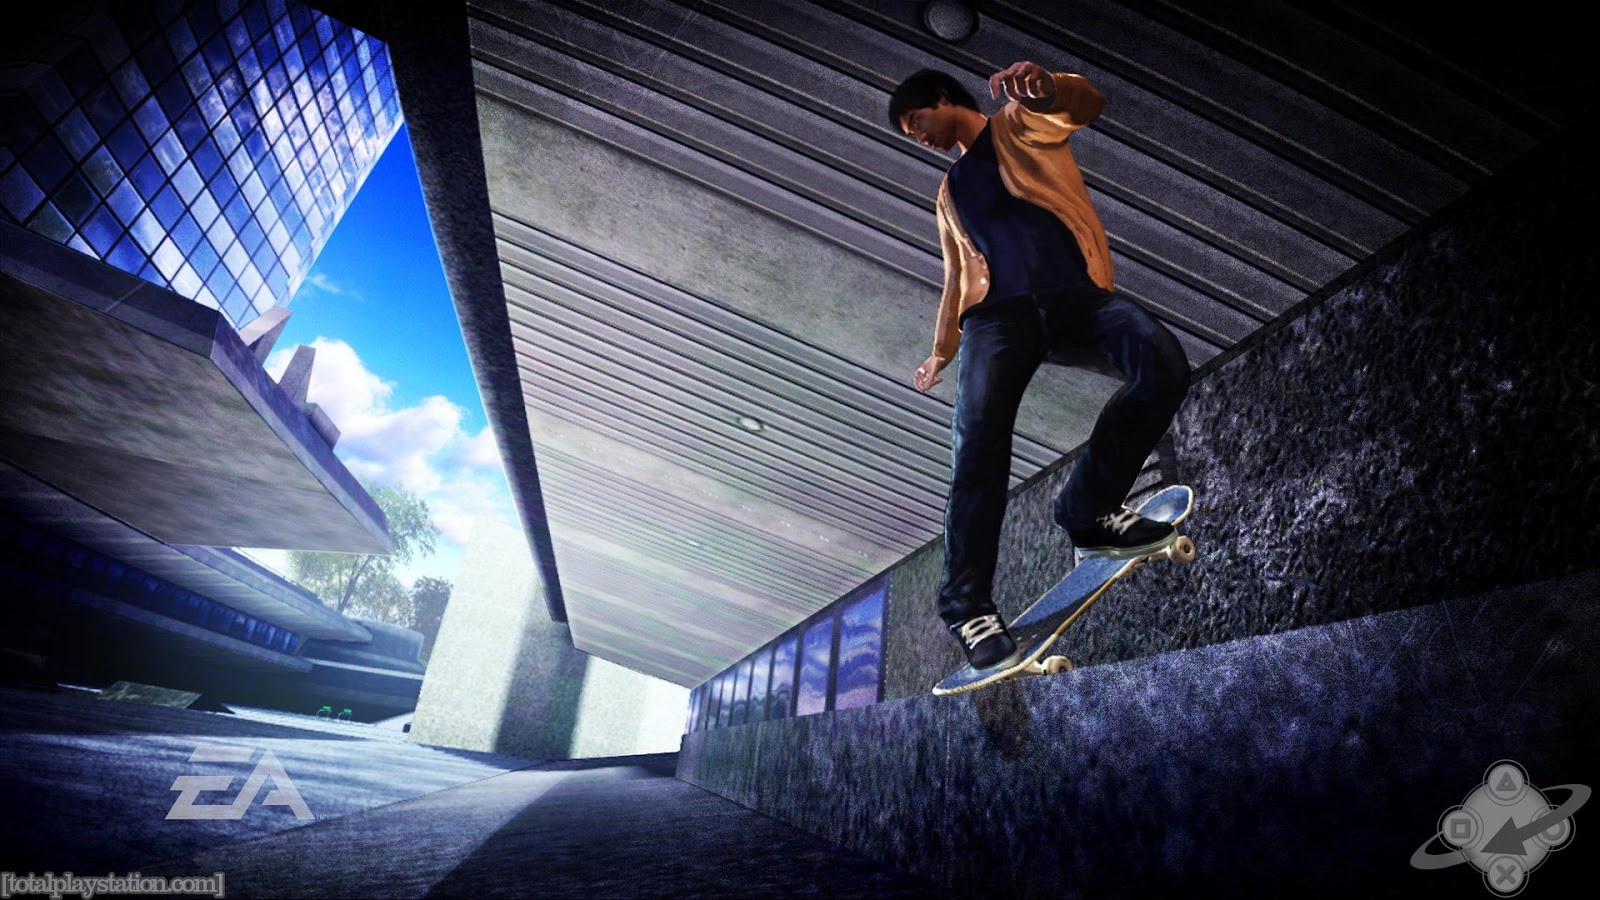 wallpapers hd for mac Skateboarding Wallpaper HD 1600x900